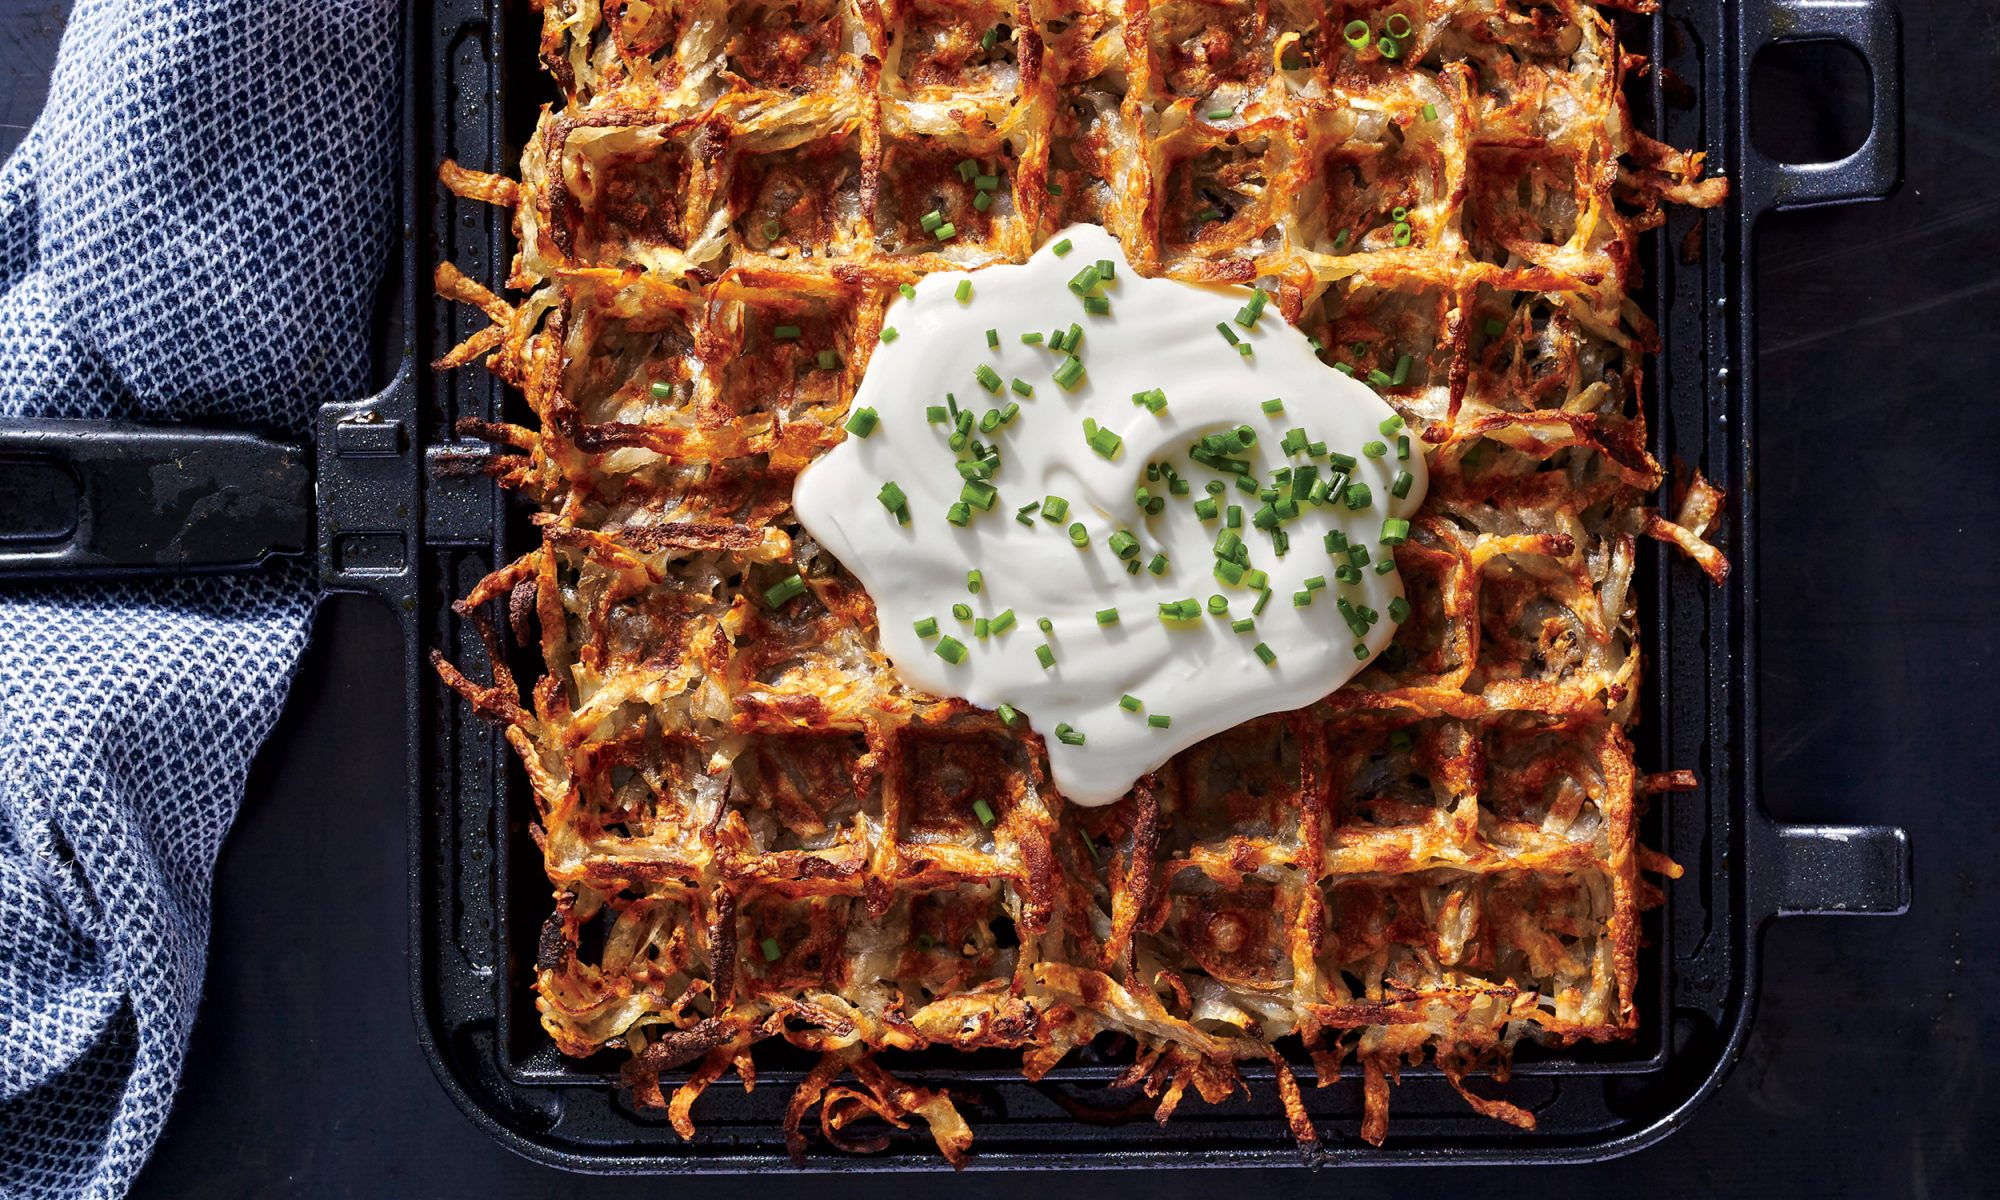 EC: The World's Crispiest Hash Browns Come from a Waffle Iron